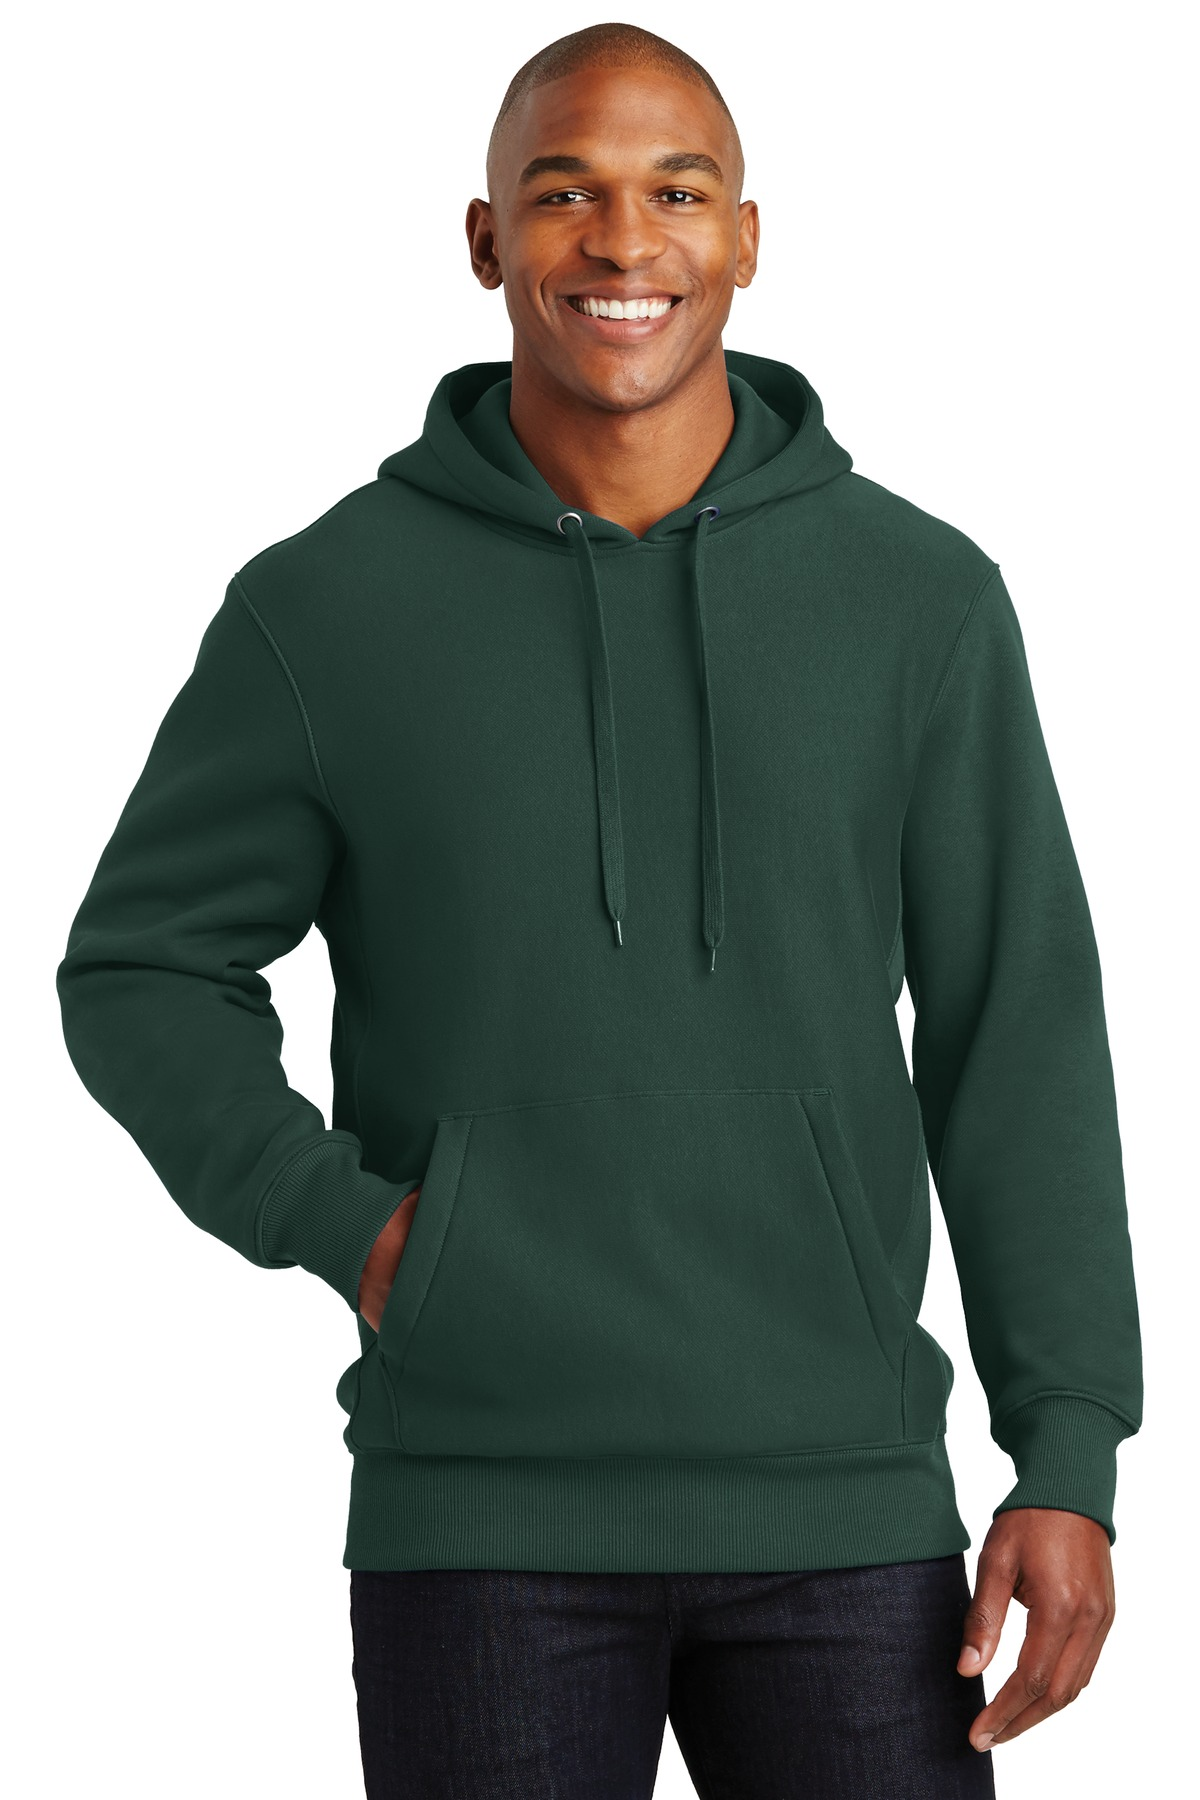 Sport-Tek ®  Super Heavyweight Pullover Hooded Sweatshirt.  F281 - Dark Green